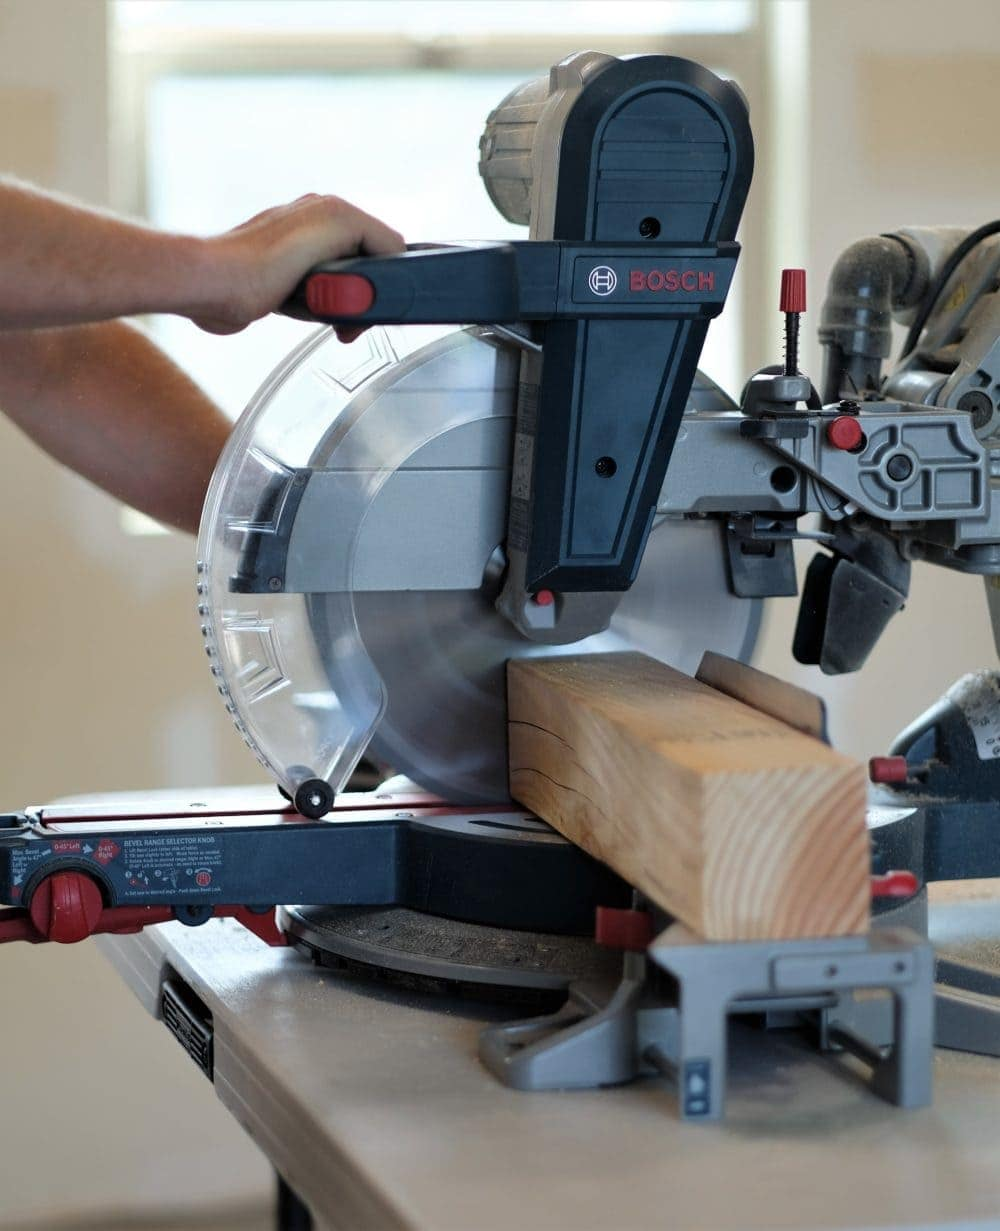 Man using a Bosch Table saw to cut a wood board for a rustic coffee table